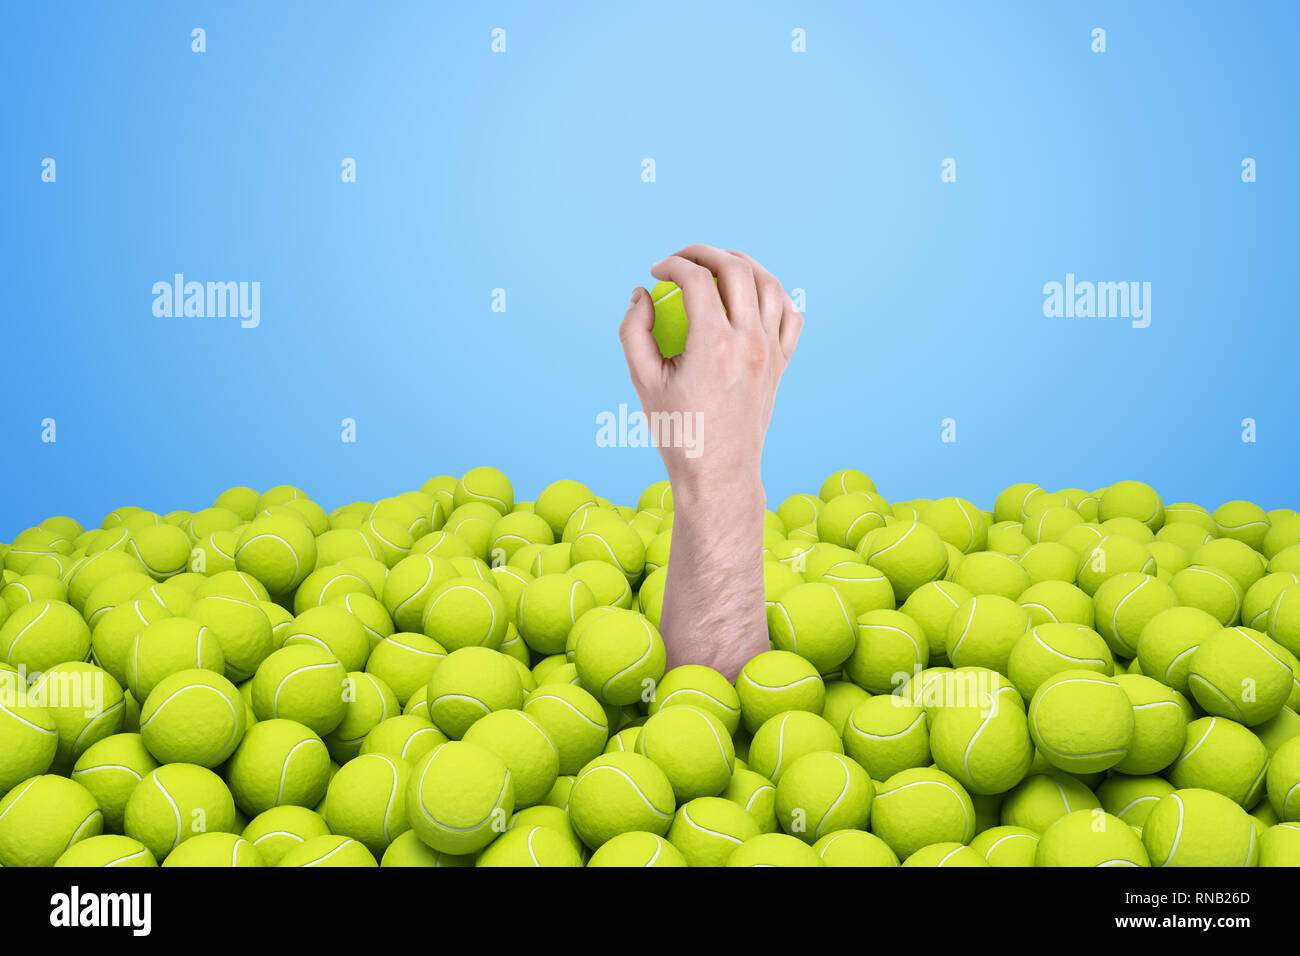 Hand appearing out of heap of yellow tennis balls holding one on blue background. - Stock Image